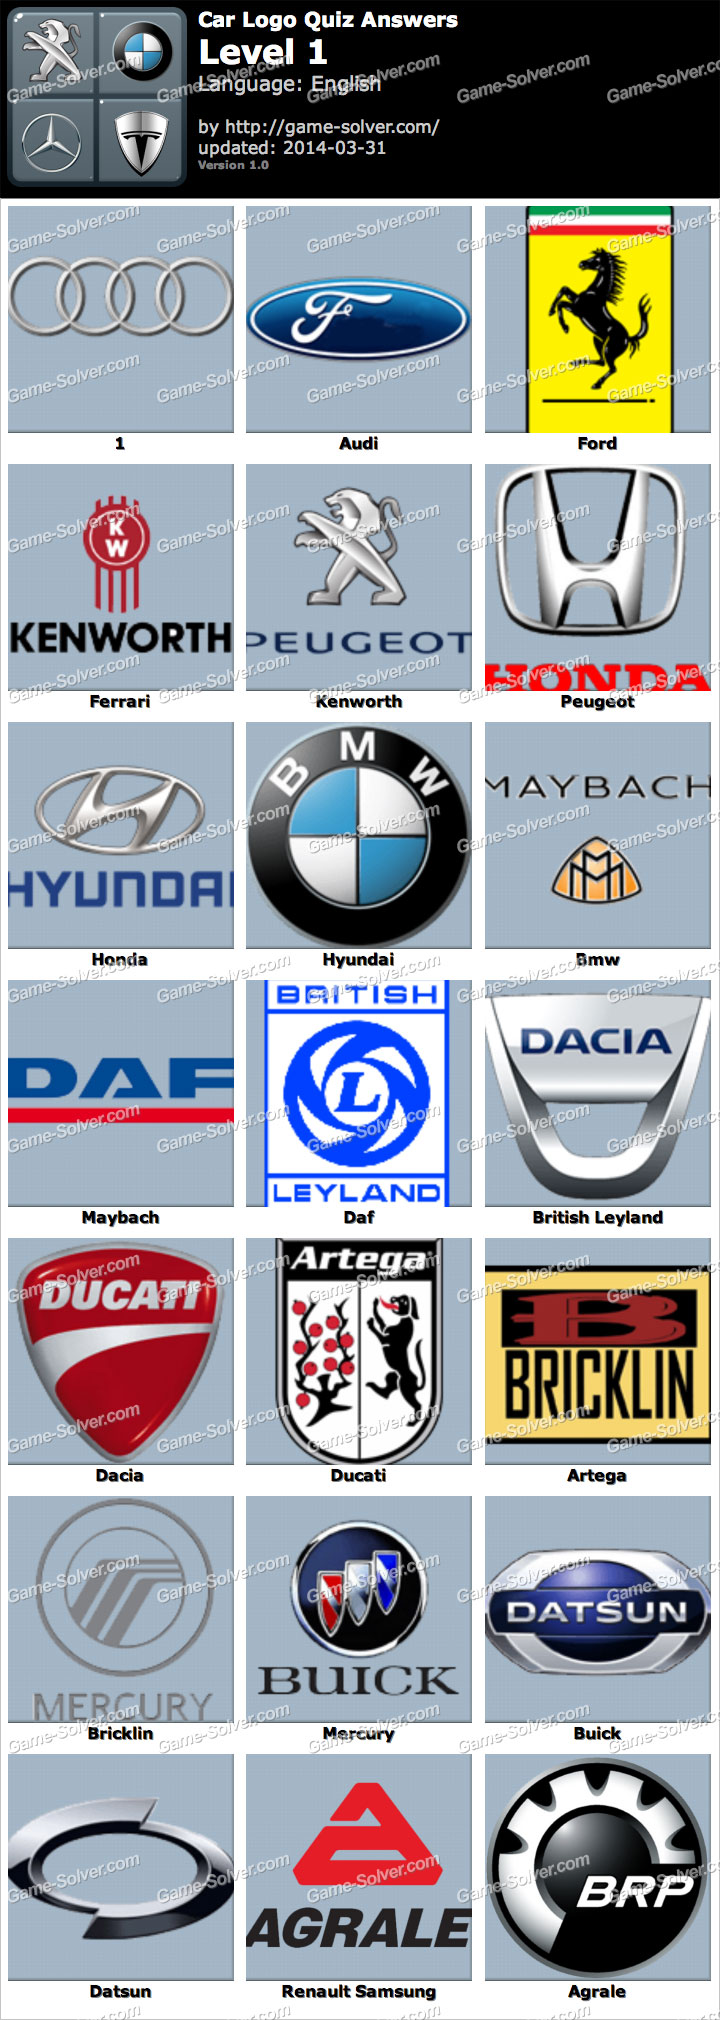 Car Logo Quiz Level 1